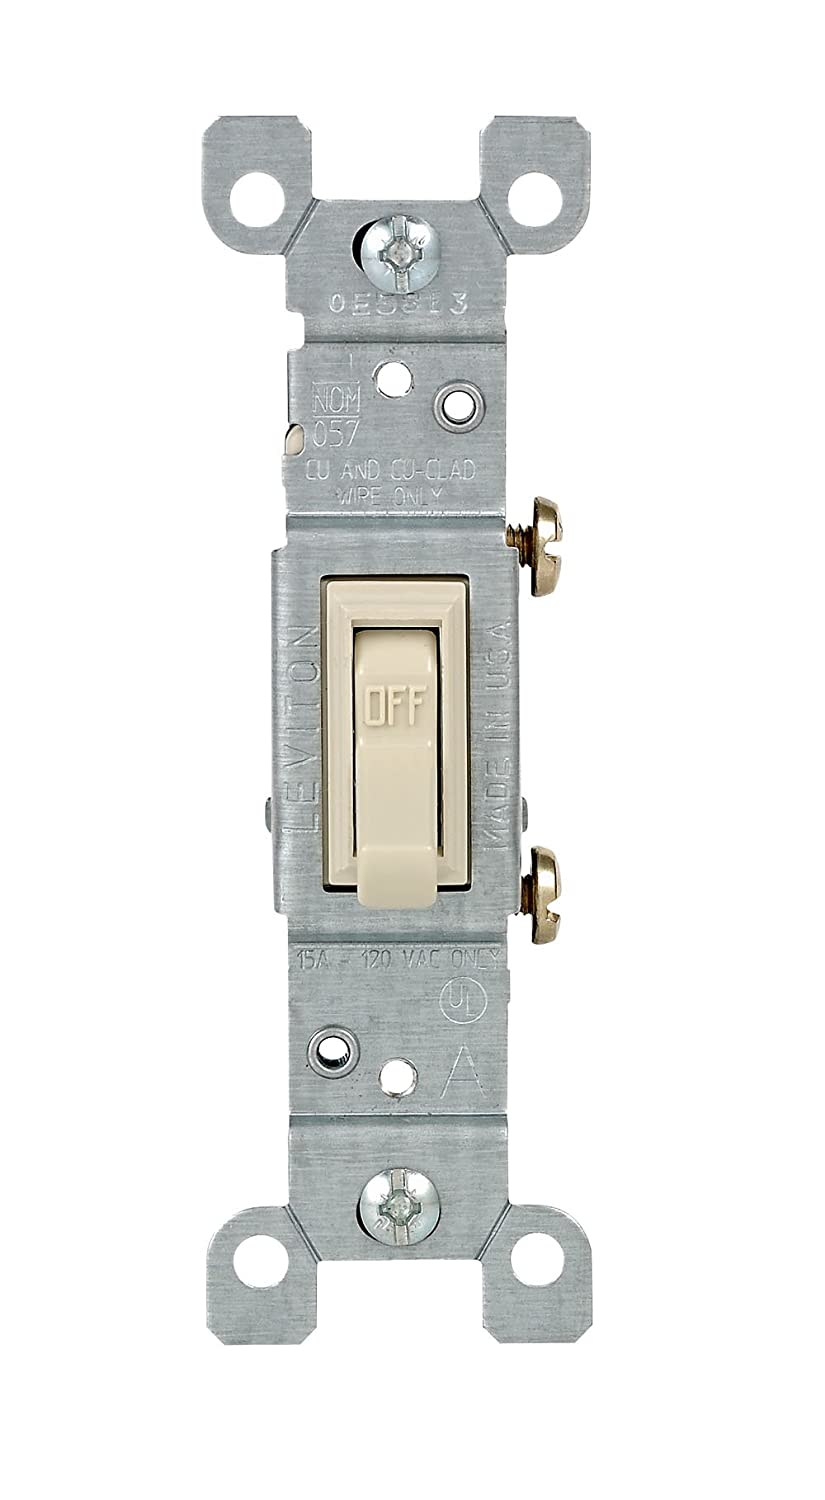 Leviton 1451-2WM 15 Amp, 120 Volt, Toggle Framed Single-Pole Ac ...